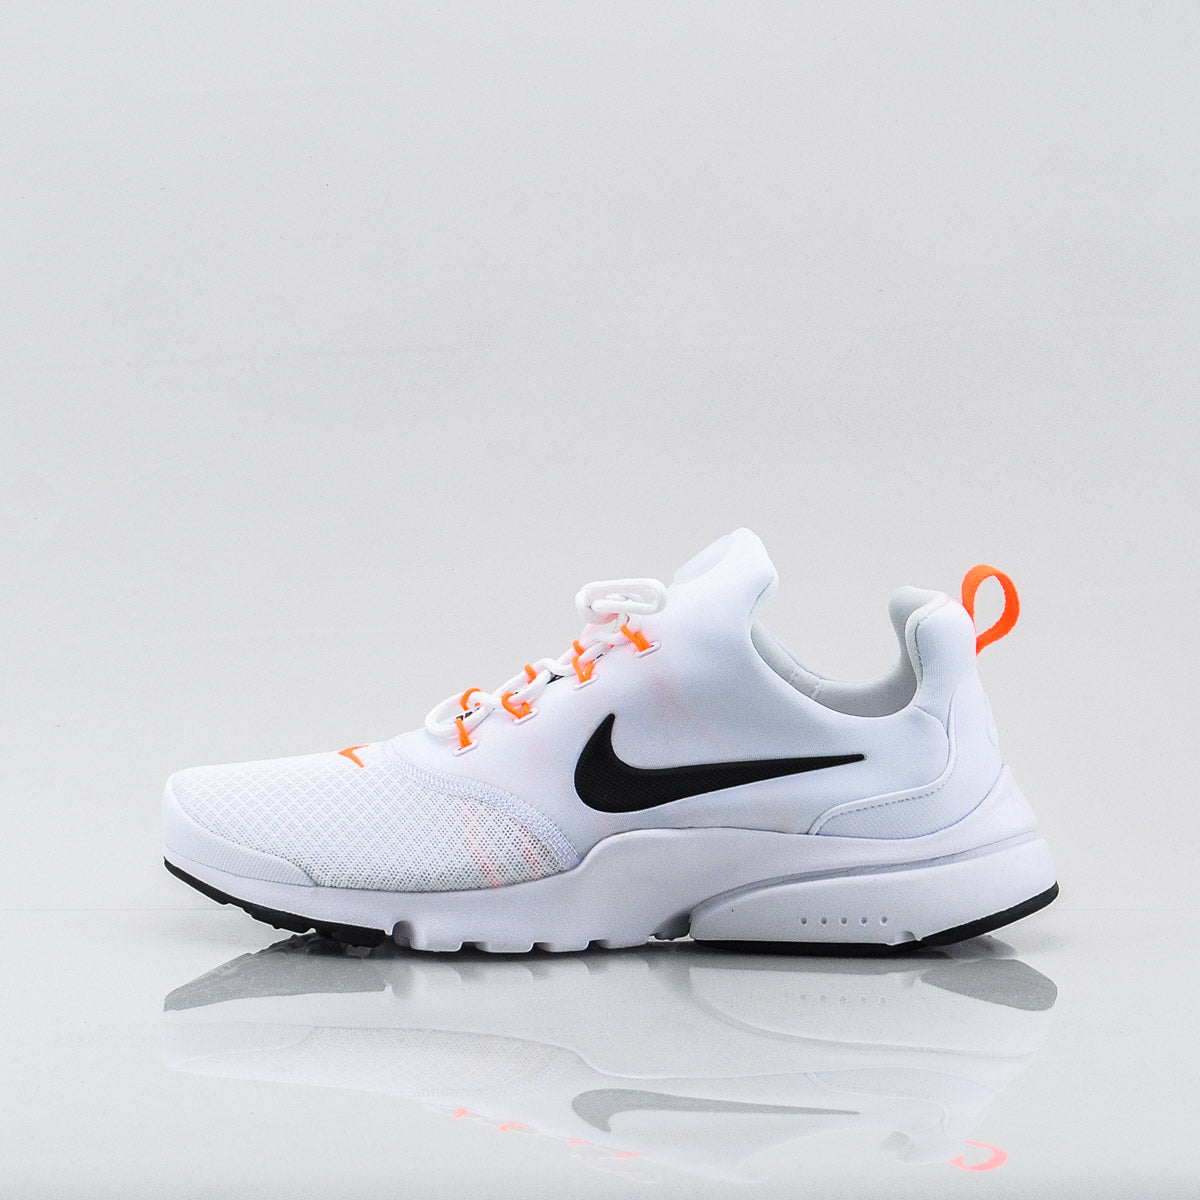 competitive price 91c54 7db54 ... czech nike presto fly jdi aq9688 100 c5e45 11e4a